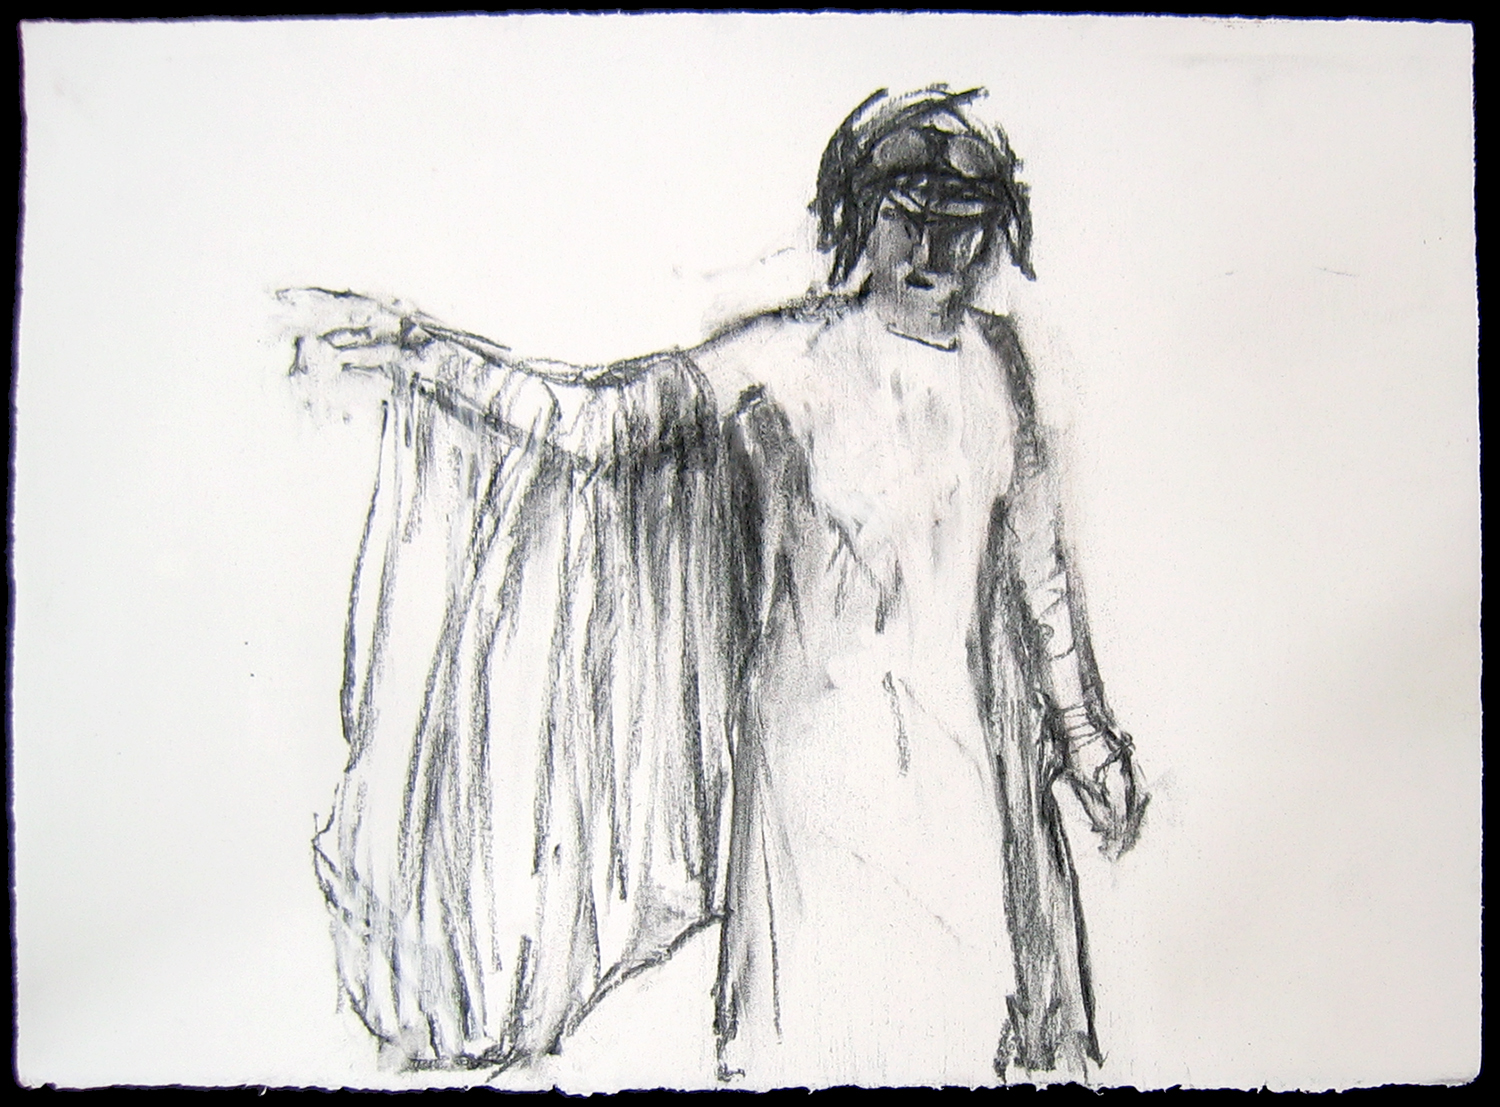 Sophia , 2006, charcoal on paper, 11 x 15 in.